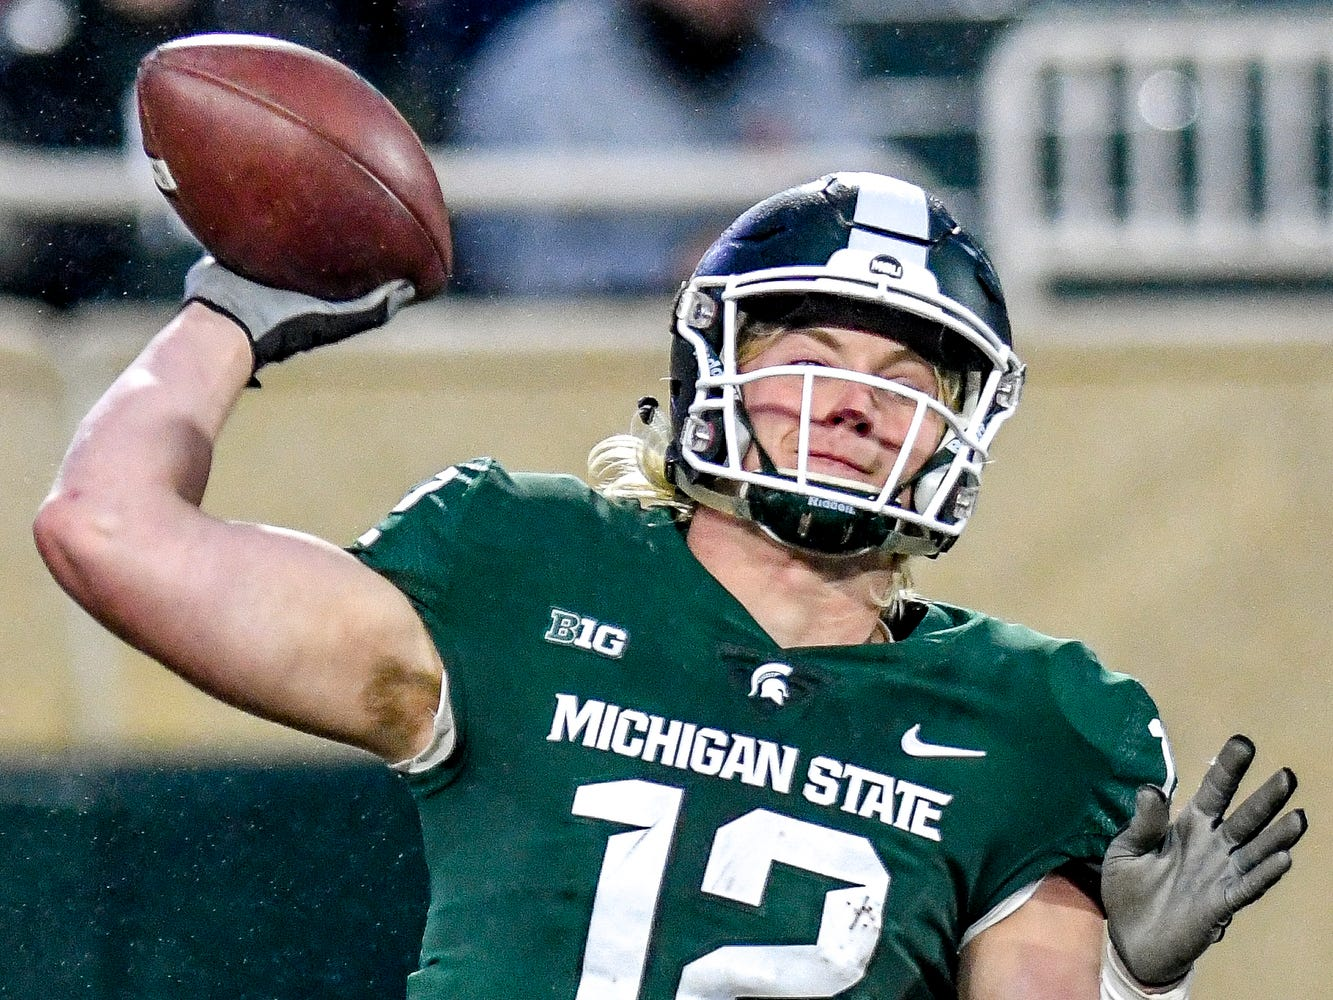 Michigan State's Rocky Lombardi throws a pass during the first quarter on Saturday, Nov. 24, 2018, at Spartan Stadium in East Lansing.